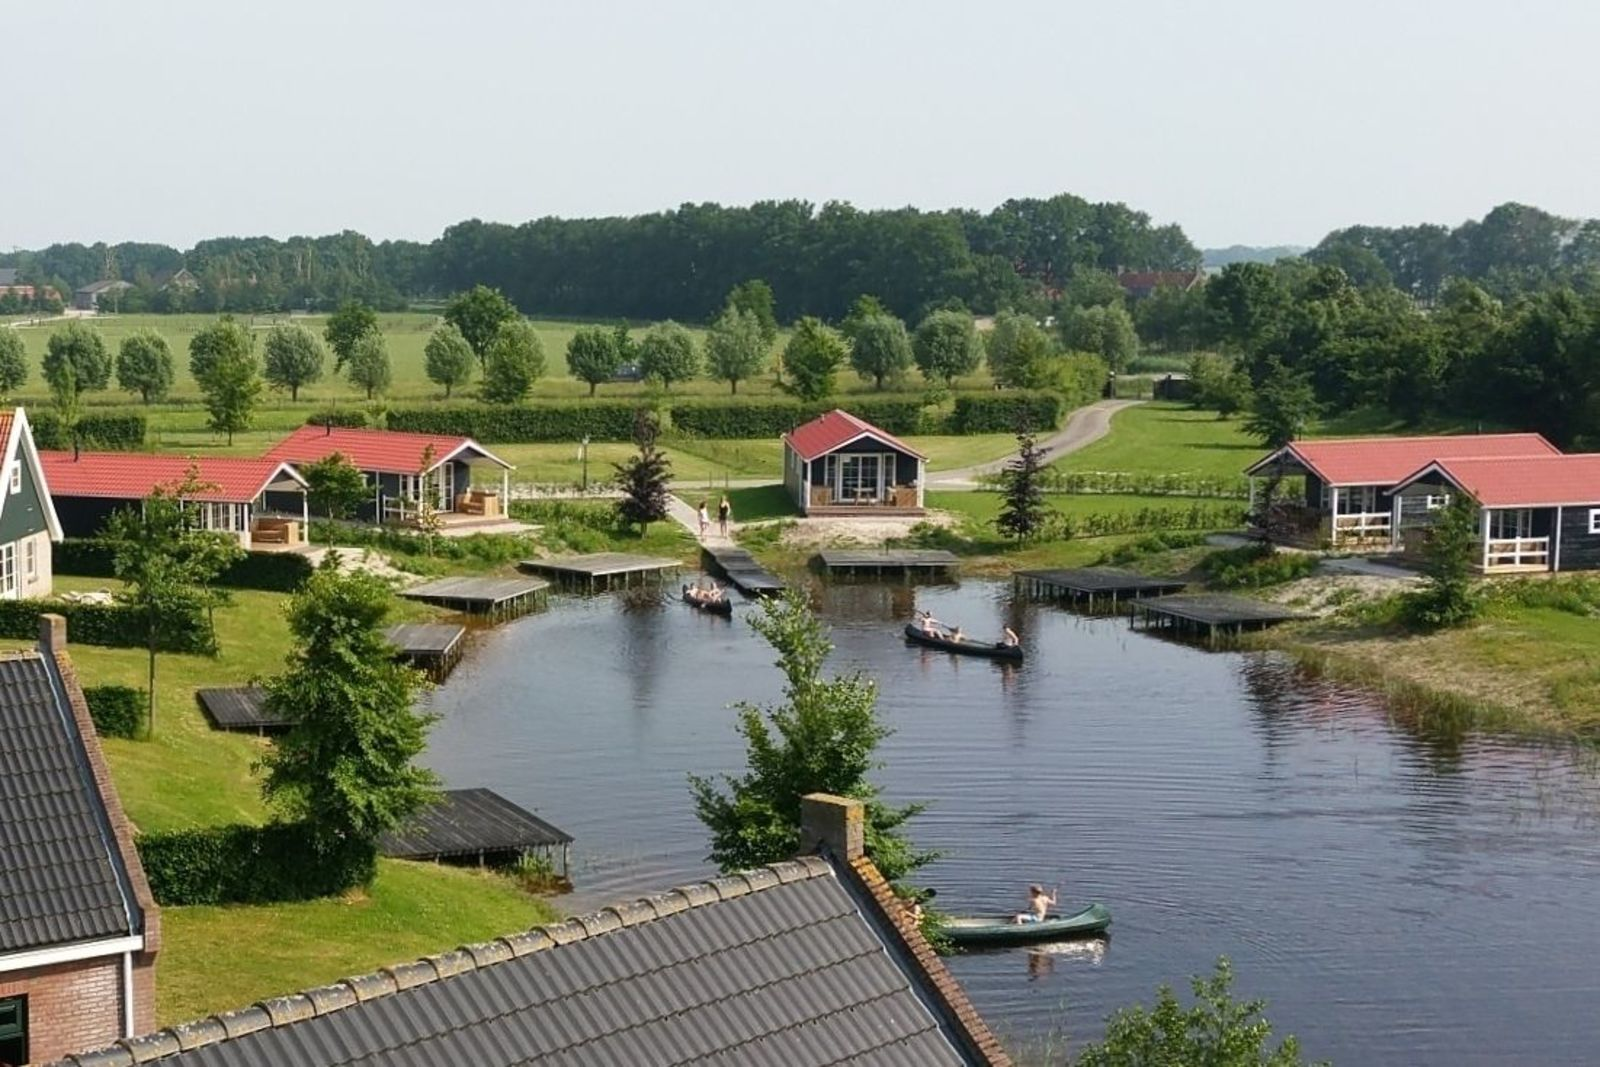 Group accommodation: group lodge + four 4-person lodges (16 people)